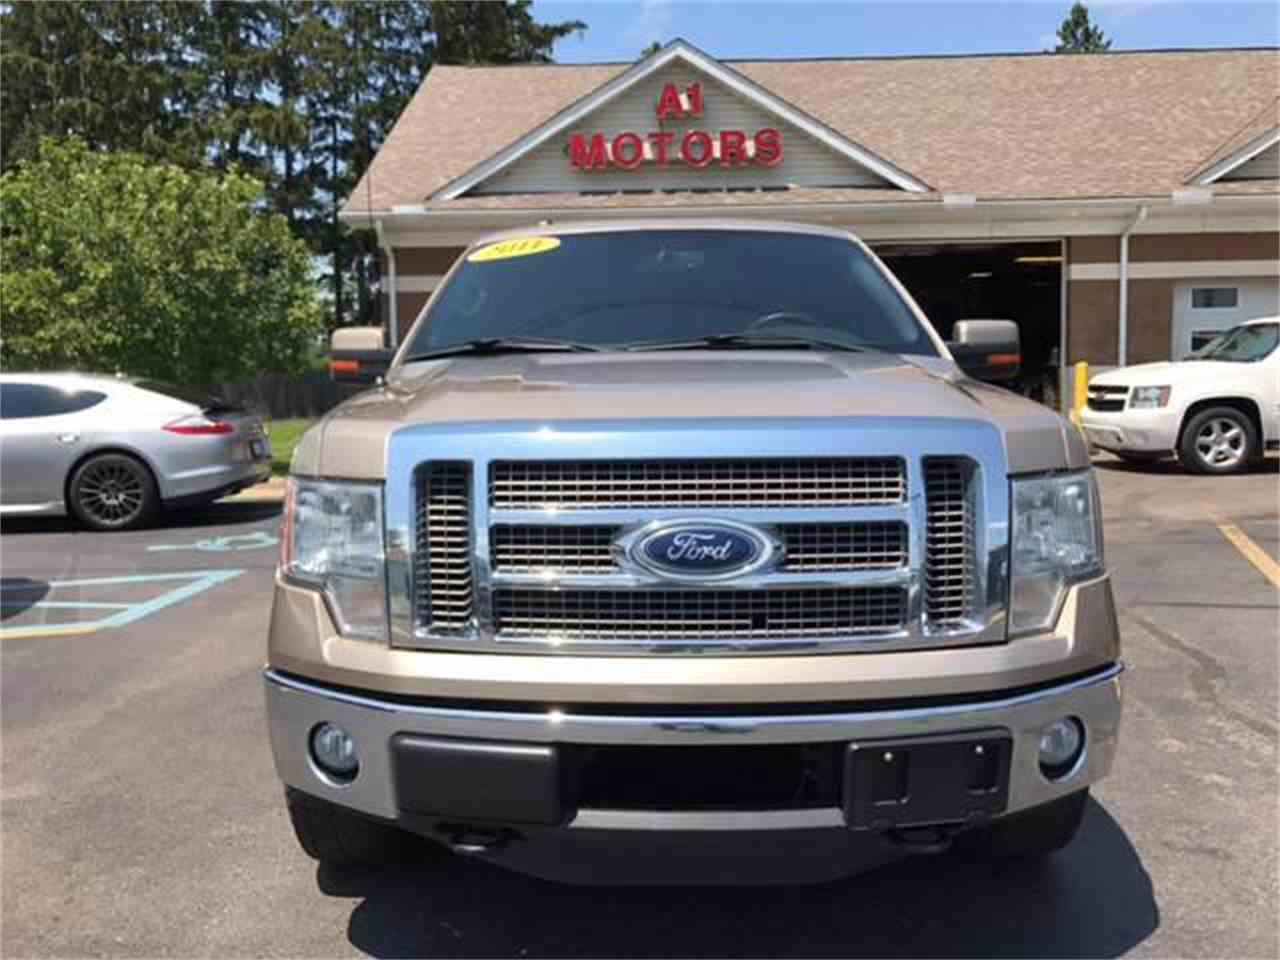 Large Picture of '11 F150 - $19,795.00 Offered by A1 Motors, LLC - LSAC